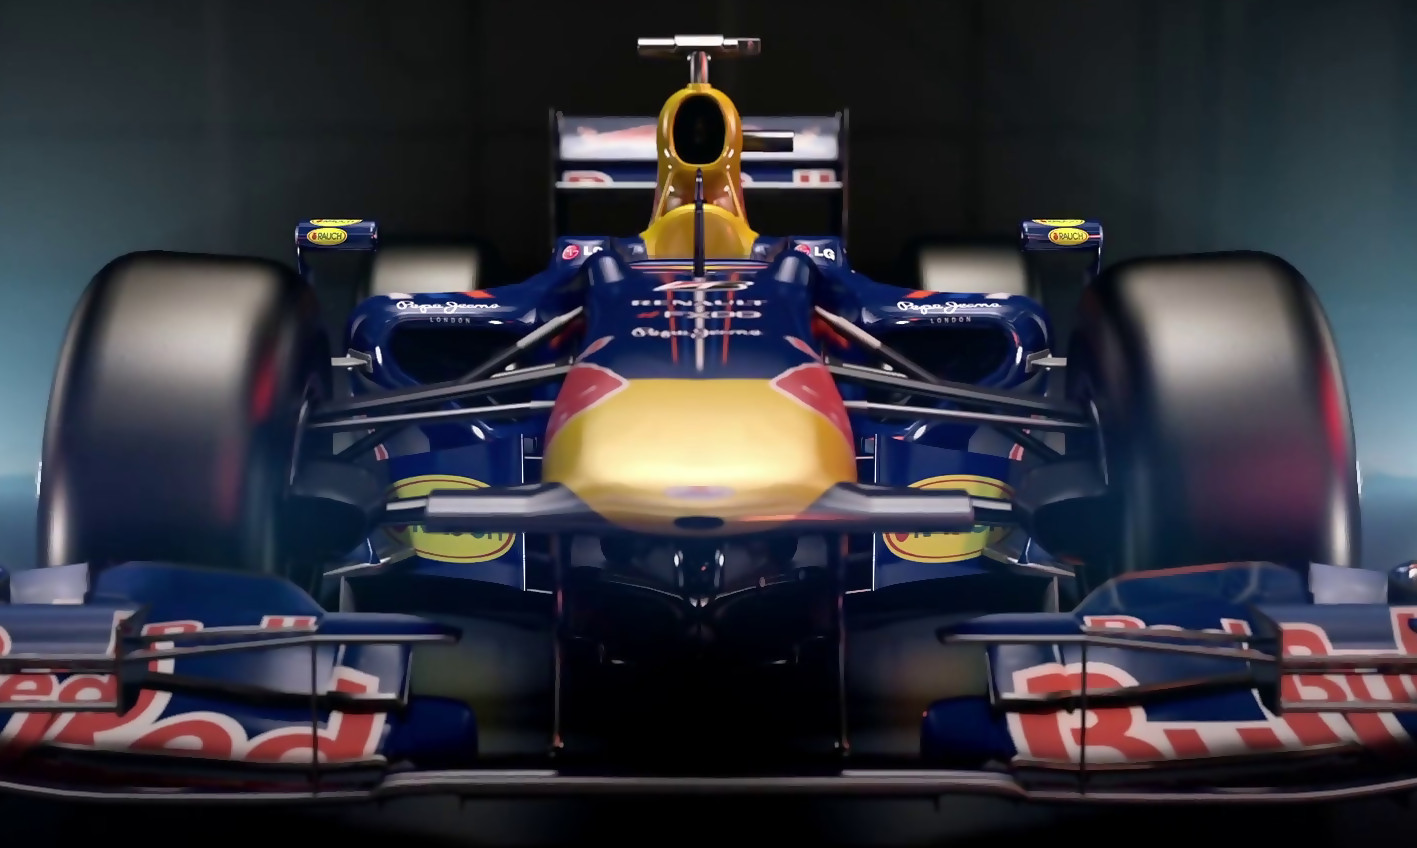 f1 2017 trailer de gameplay de la redbull rb6 de sebastian vettel. Black Bedroom Furniture Sets. Home Design Ideas